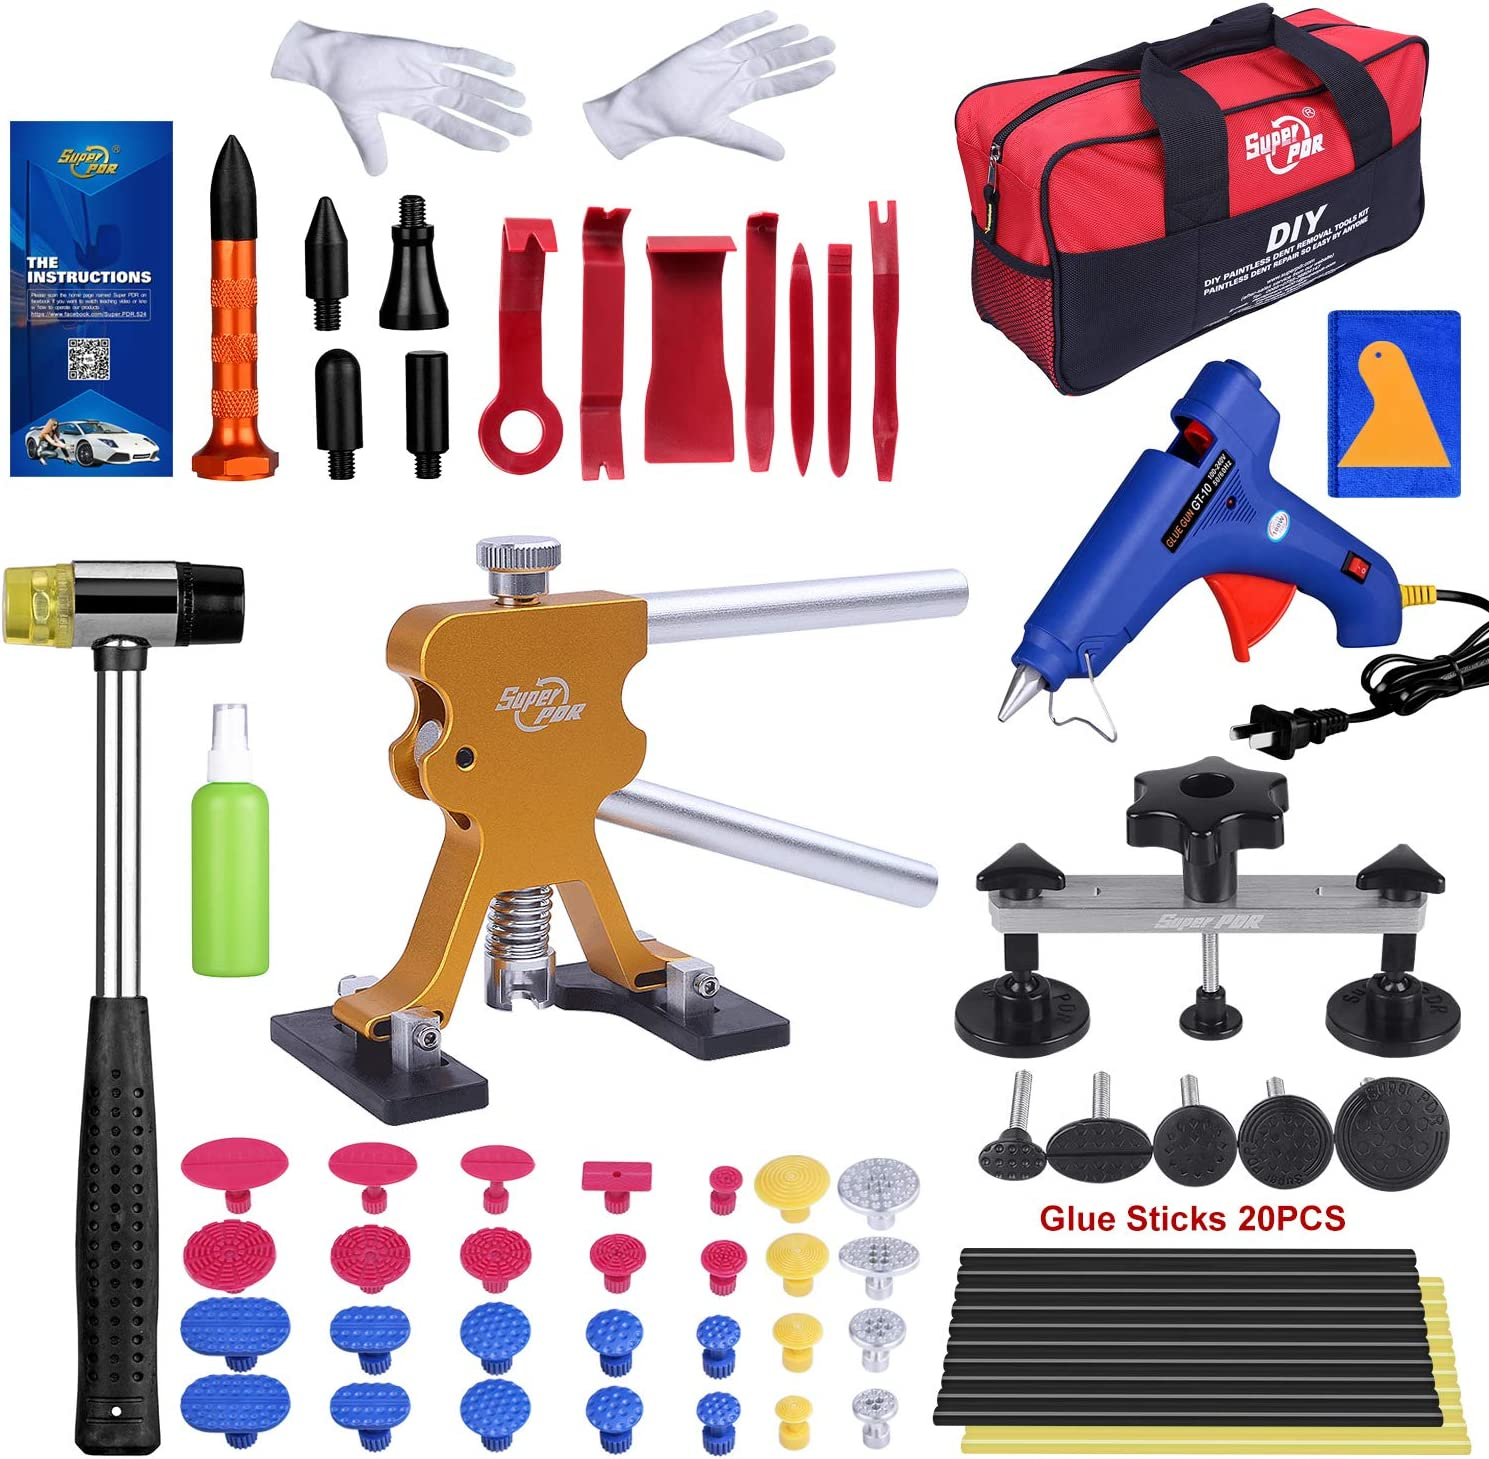 Amazon Com Paintless Dent Trims Removal Tools Diy Dent Remover For Hail Dent Car Door Dent Ding Motorcycle Tank Dent 70pcs Pro Auto Dent Puller Kit With 28pcs Of Dent Pull Taps